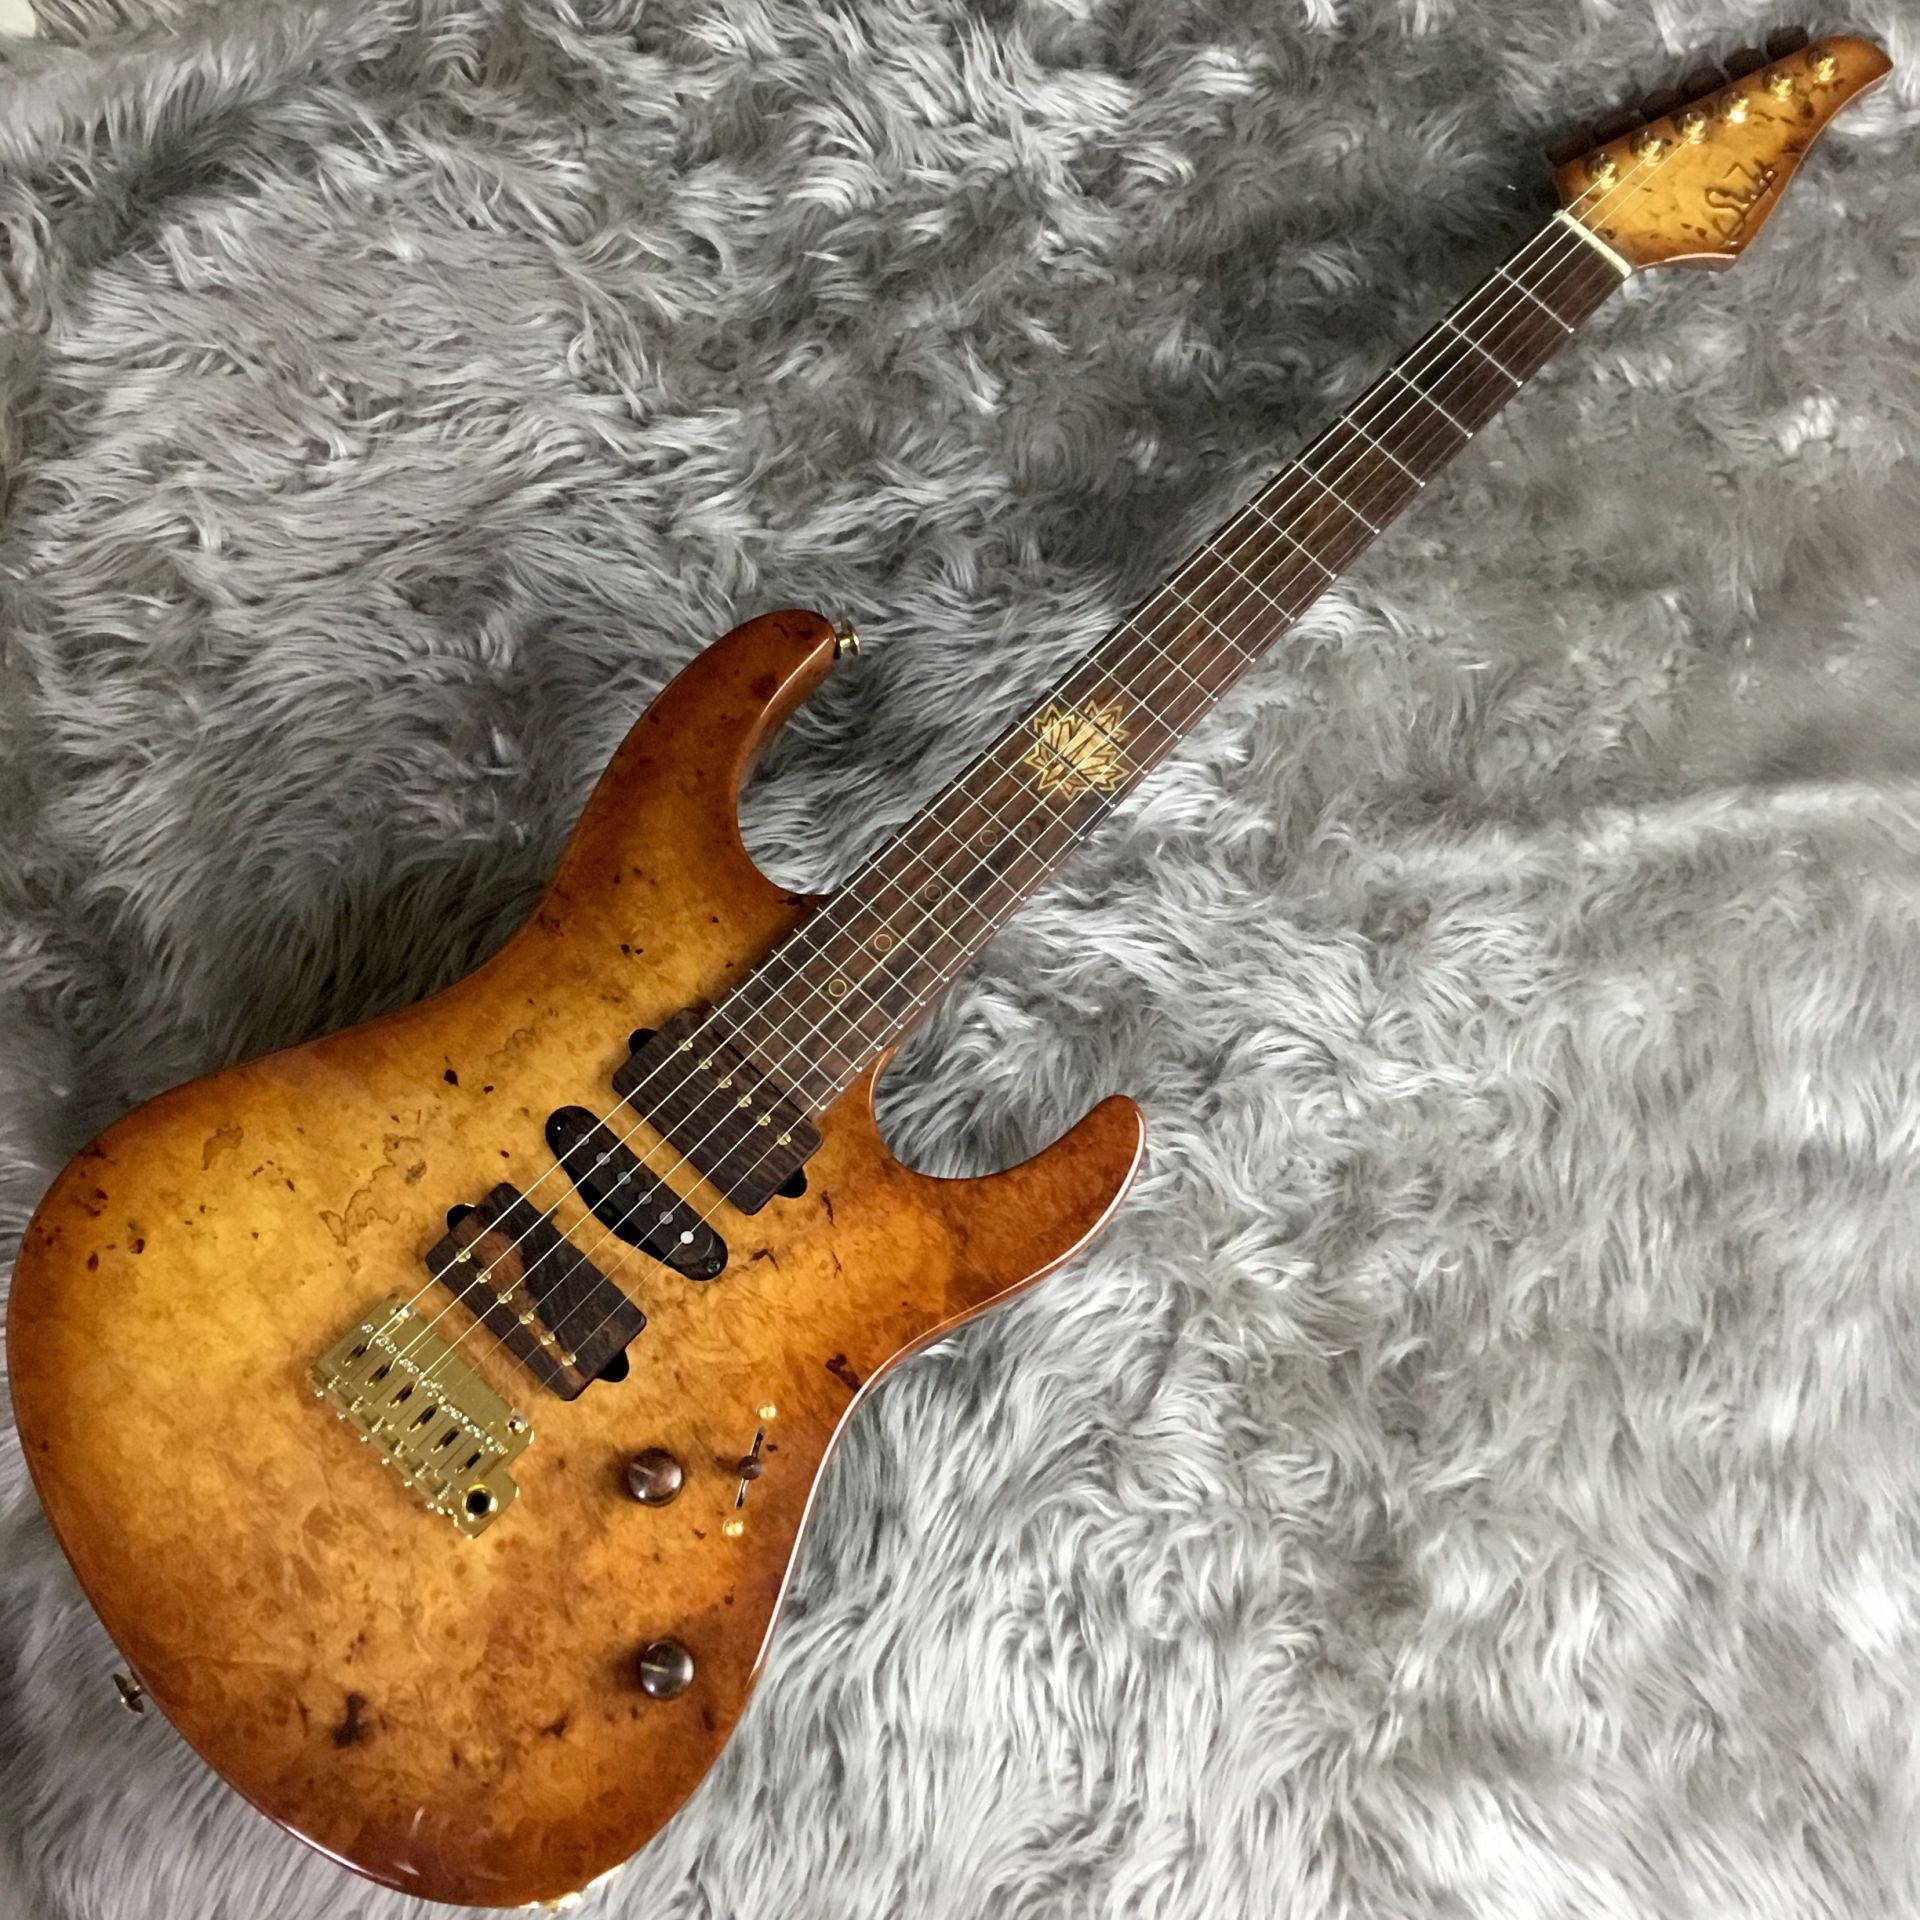 The 2015 Collection Burl Maple Modern Carve Top